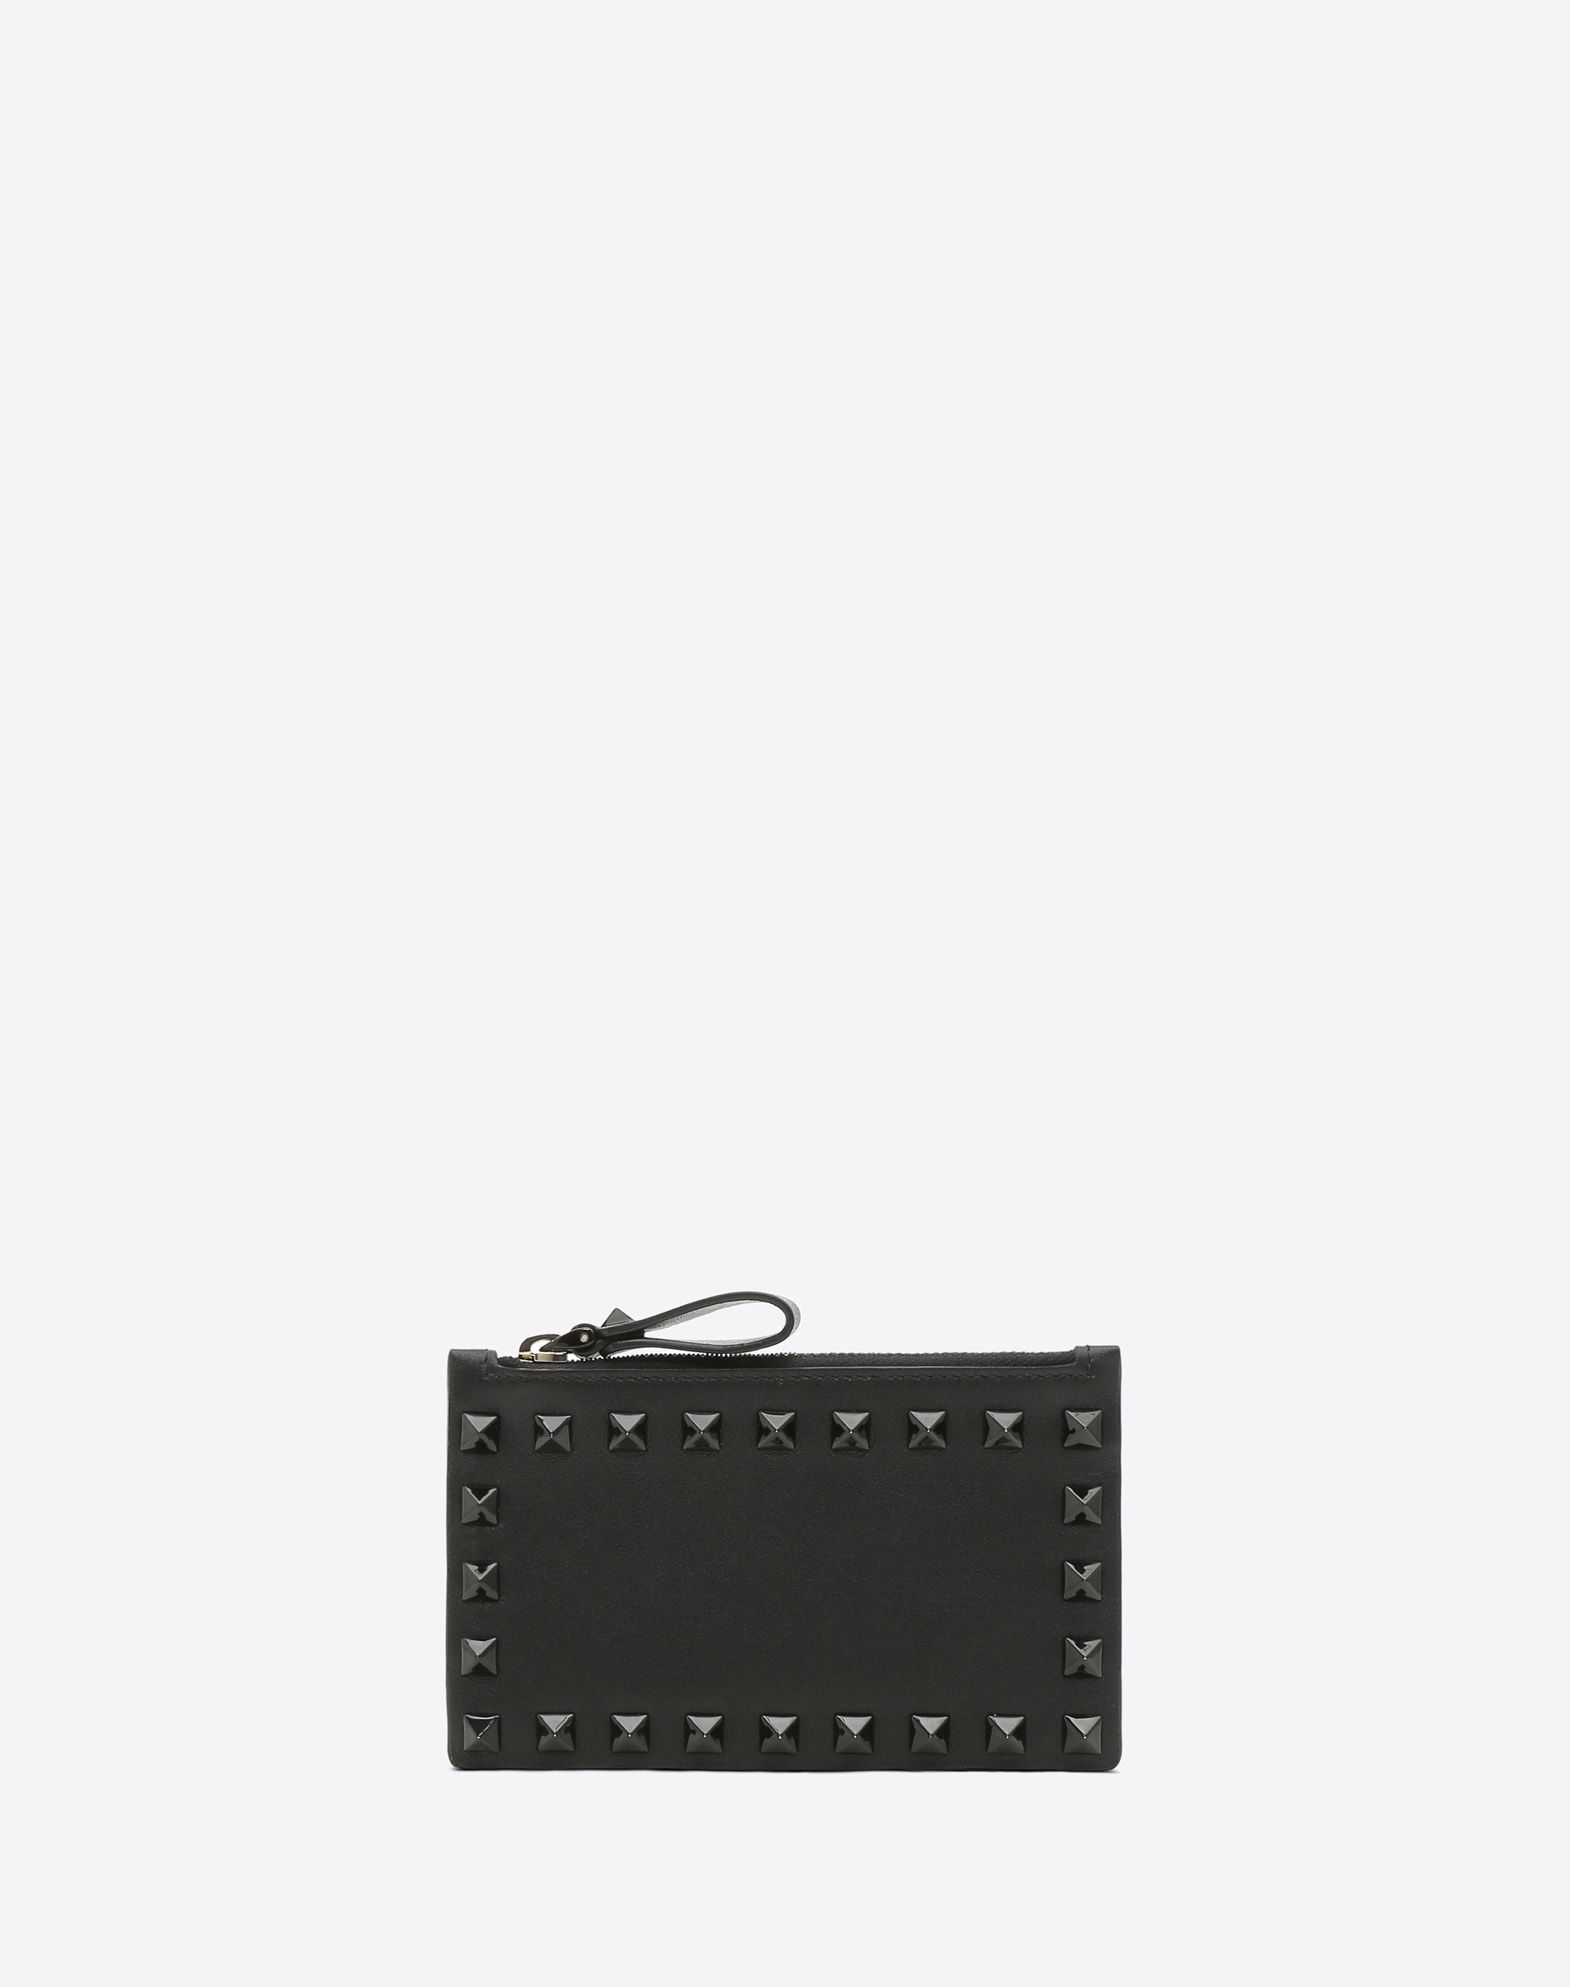 VALENTINO GARAVANI Rockstud Coin Purse and Cardholder COIN PURSES & CARD CASES D f